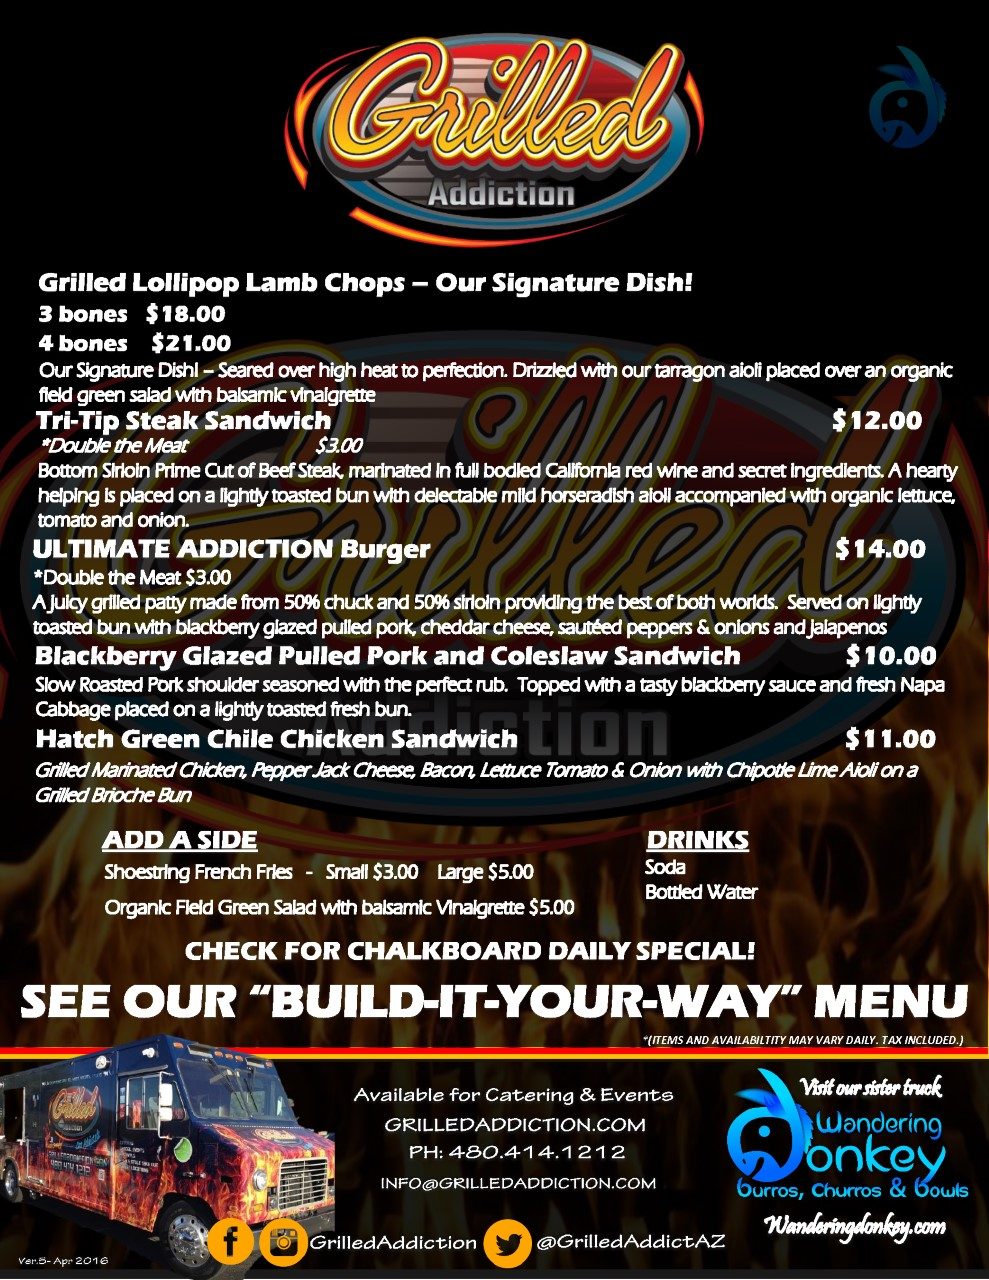 CATERING MENU Grilled Addiction